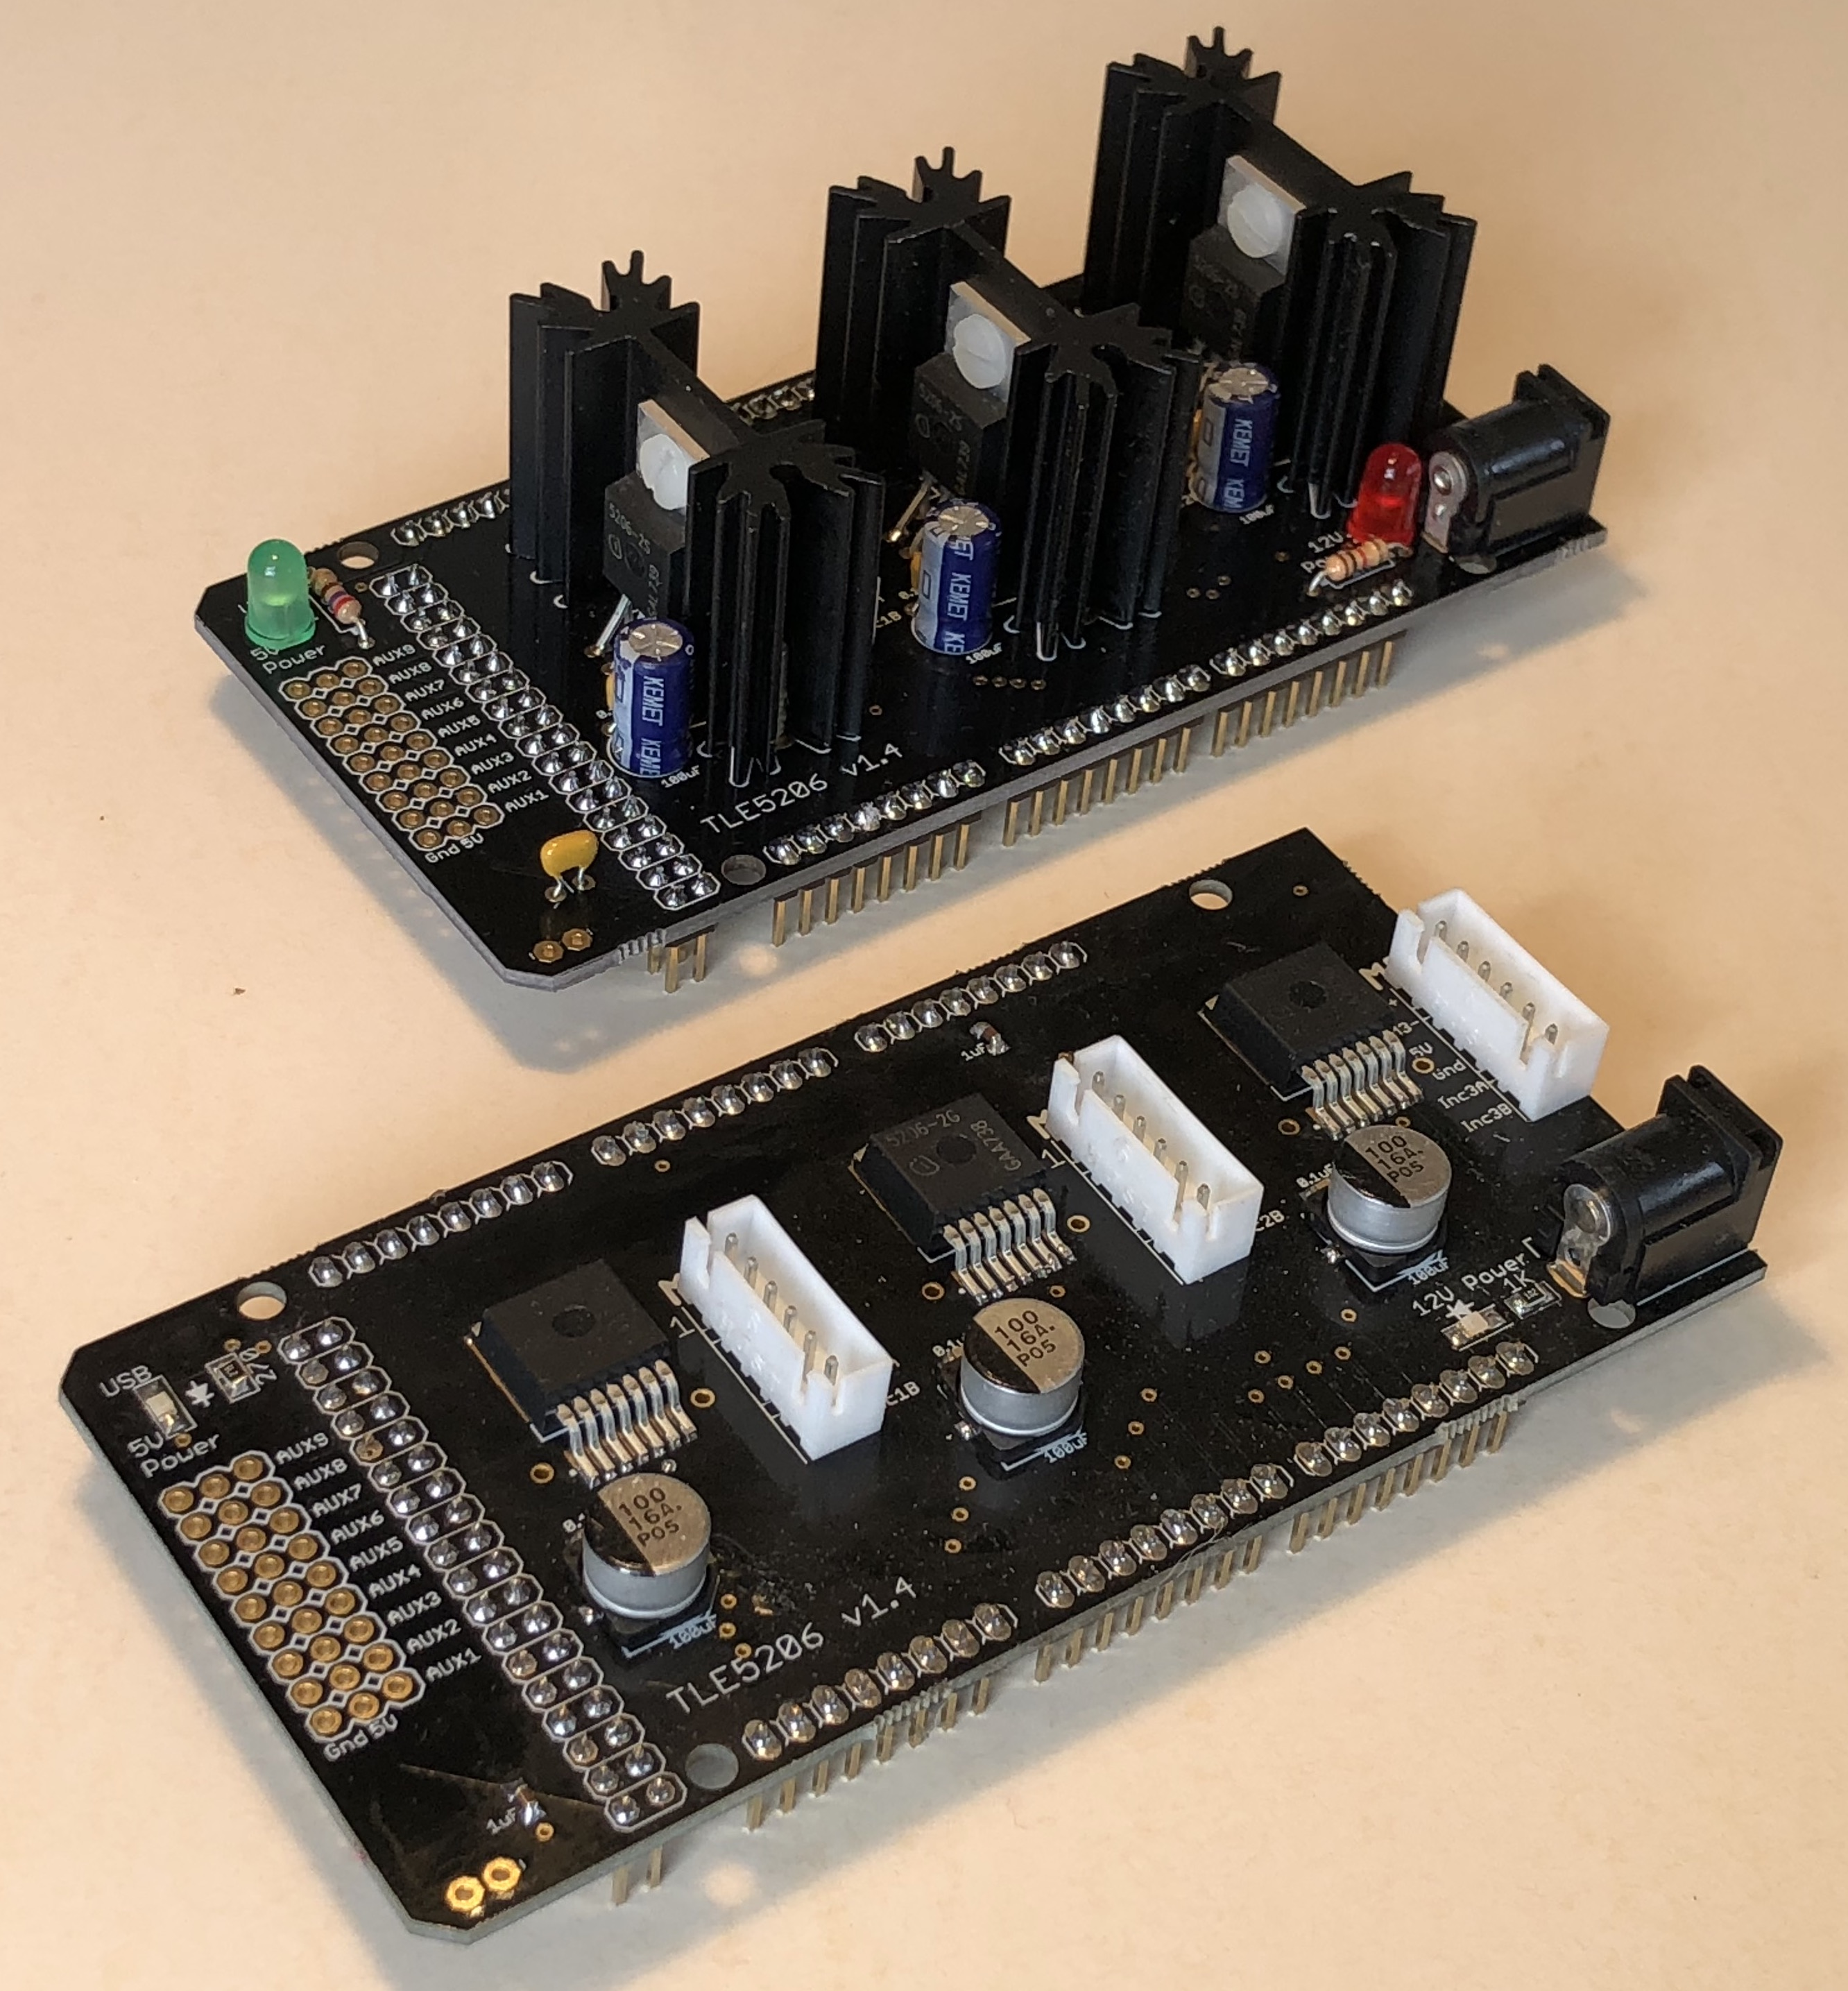 Tle5206 Powercontrol Boards Engine Running Detection Electronics Forum Circuits Projects And